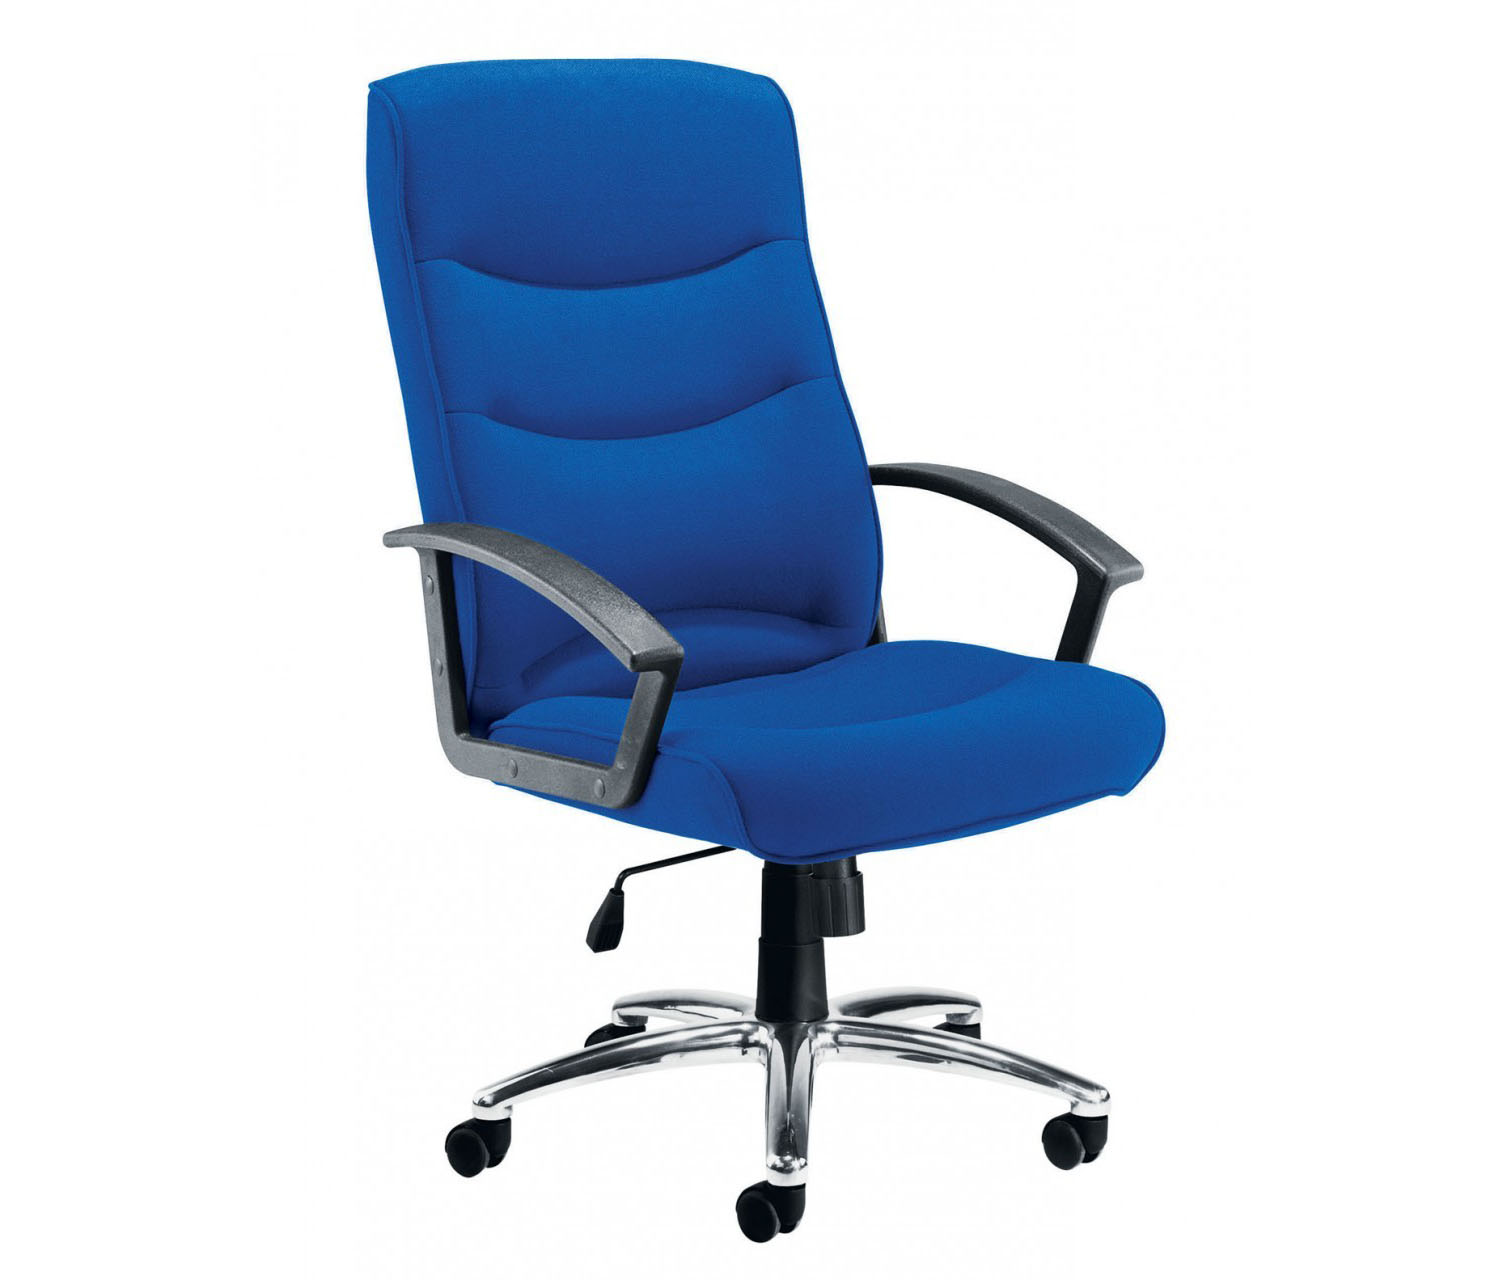 Best Bud fice Chairs for Your Healthy and fy Working Time